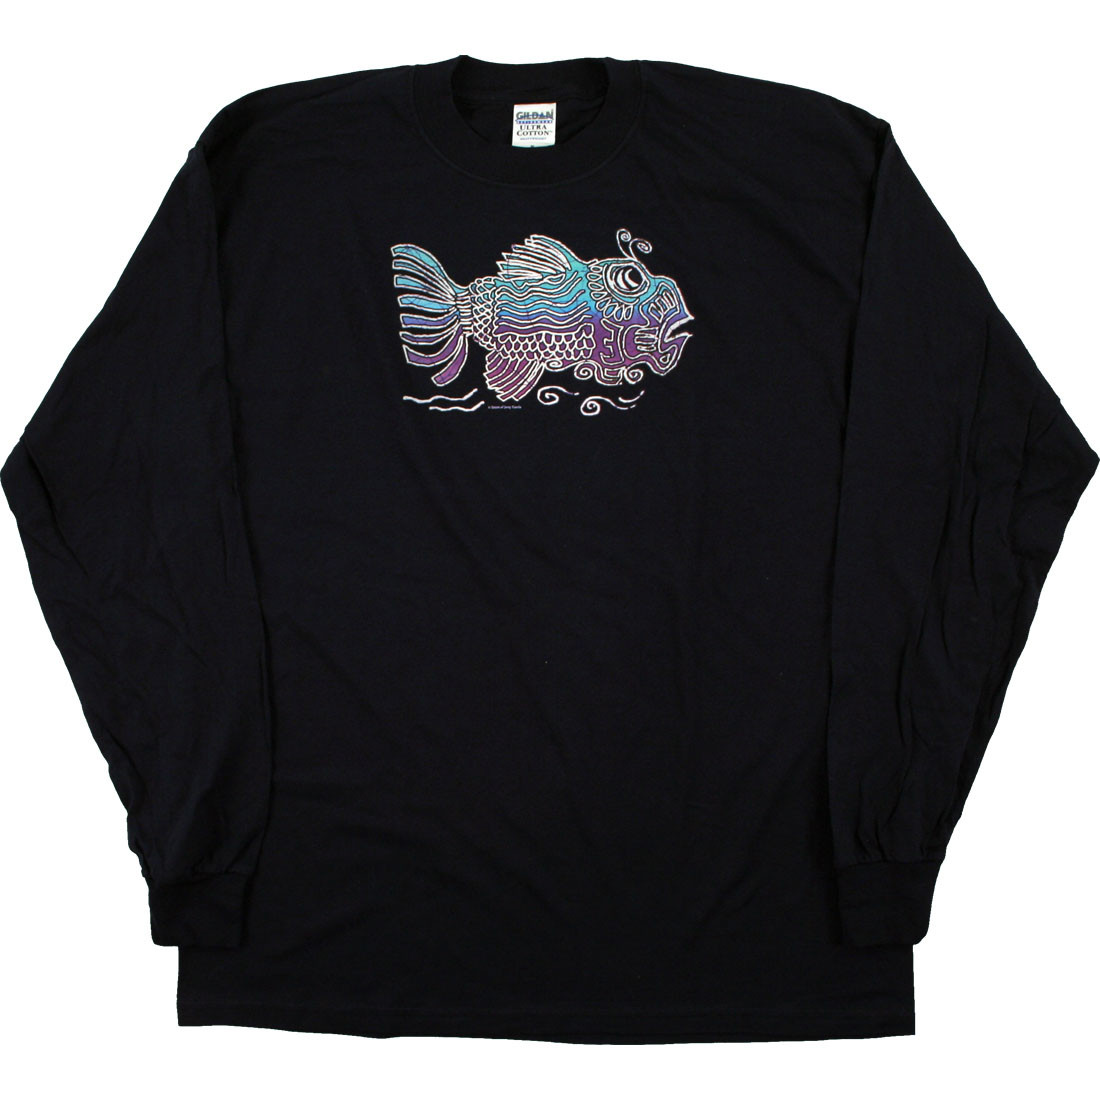 Jerry Fish Navy Long Sleeve T-Shirt